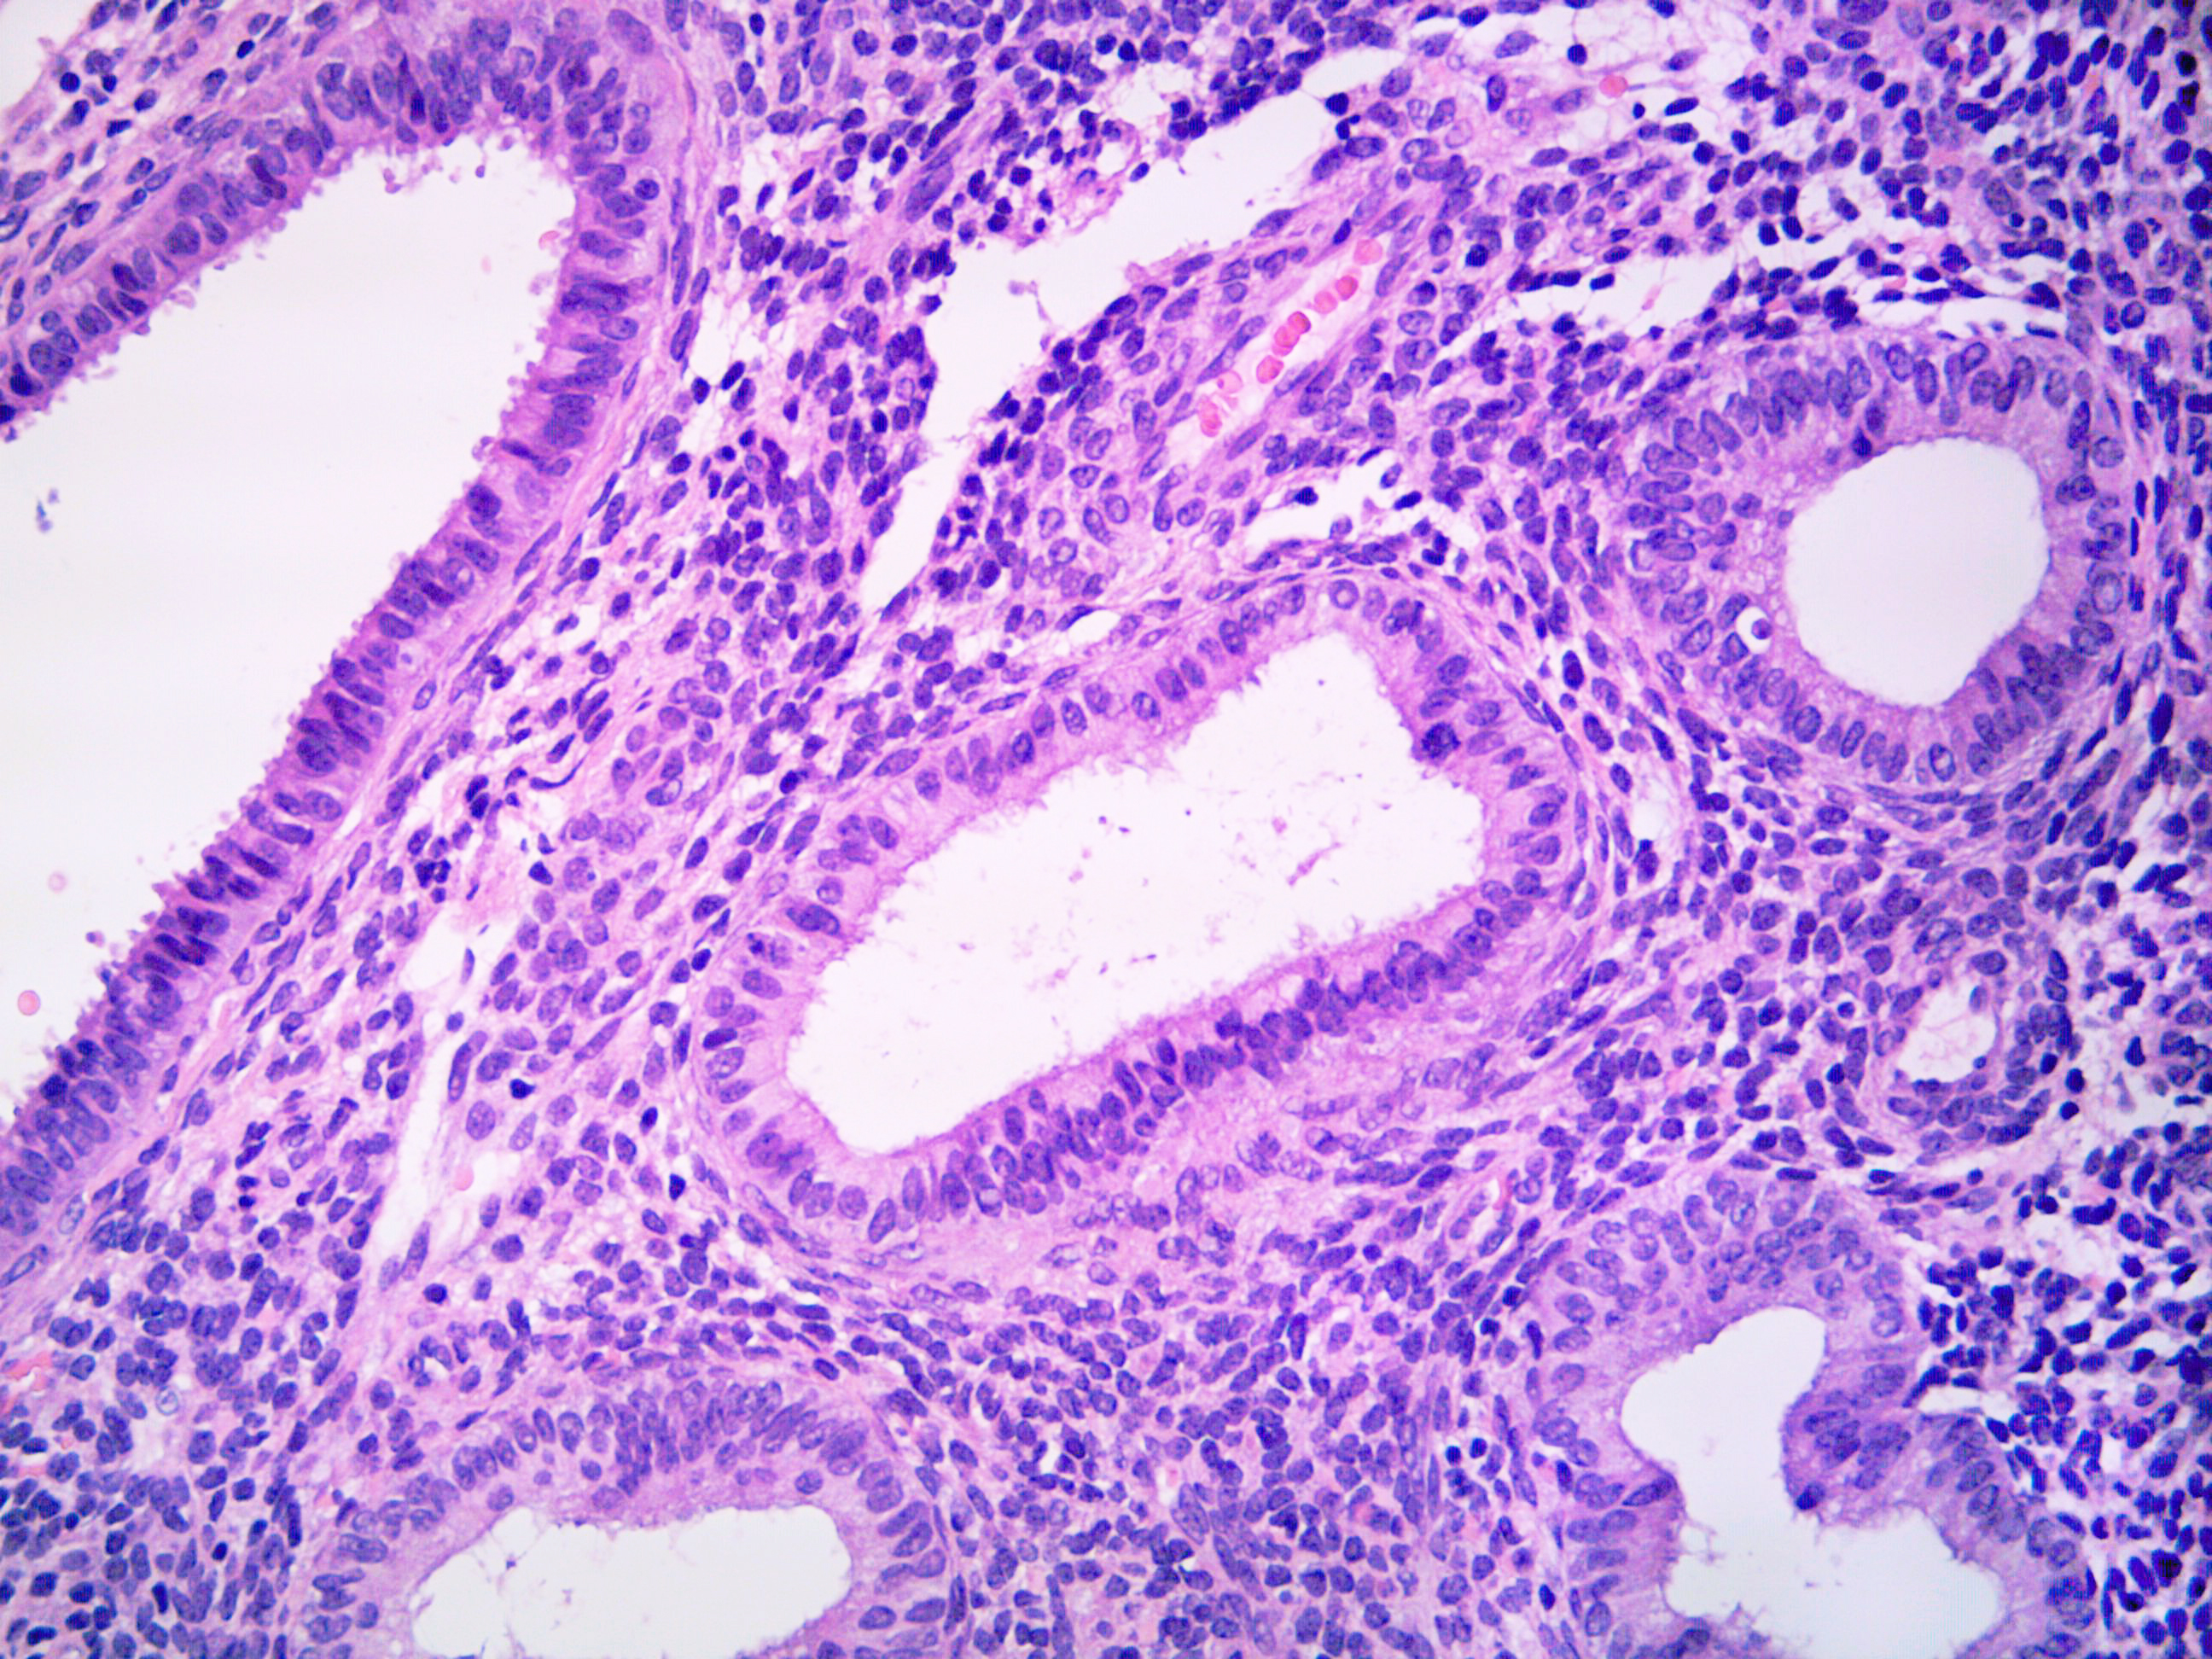 PAEC with low columnar inactivity and weakly secretory epithelium